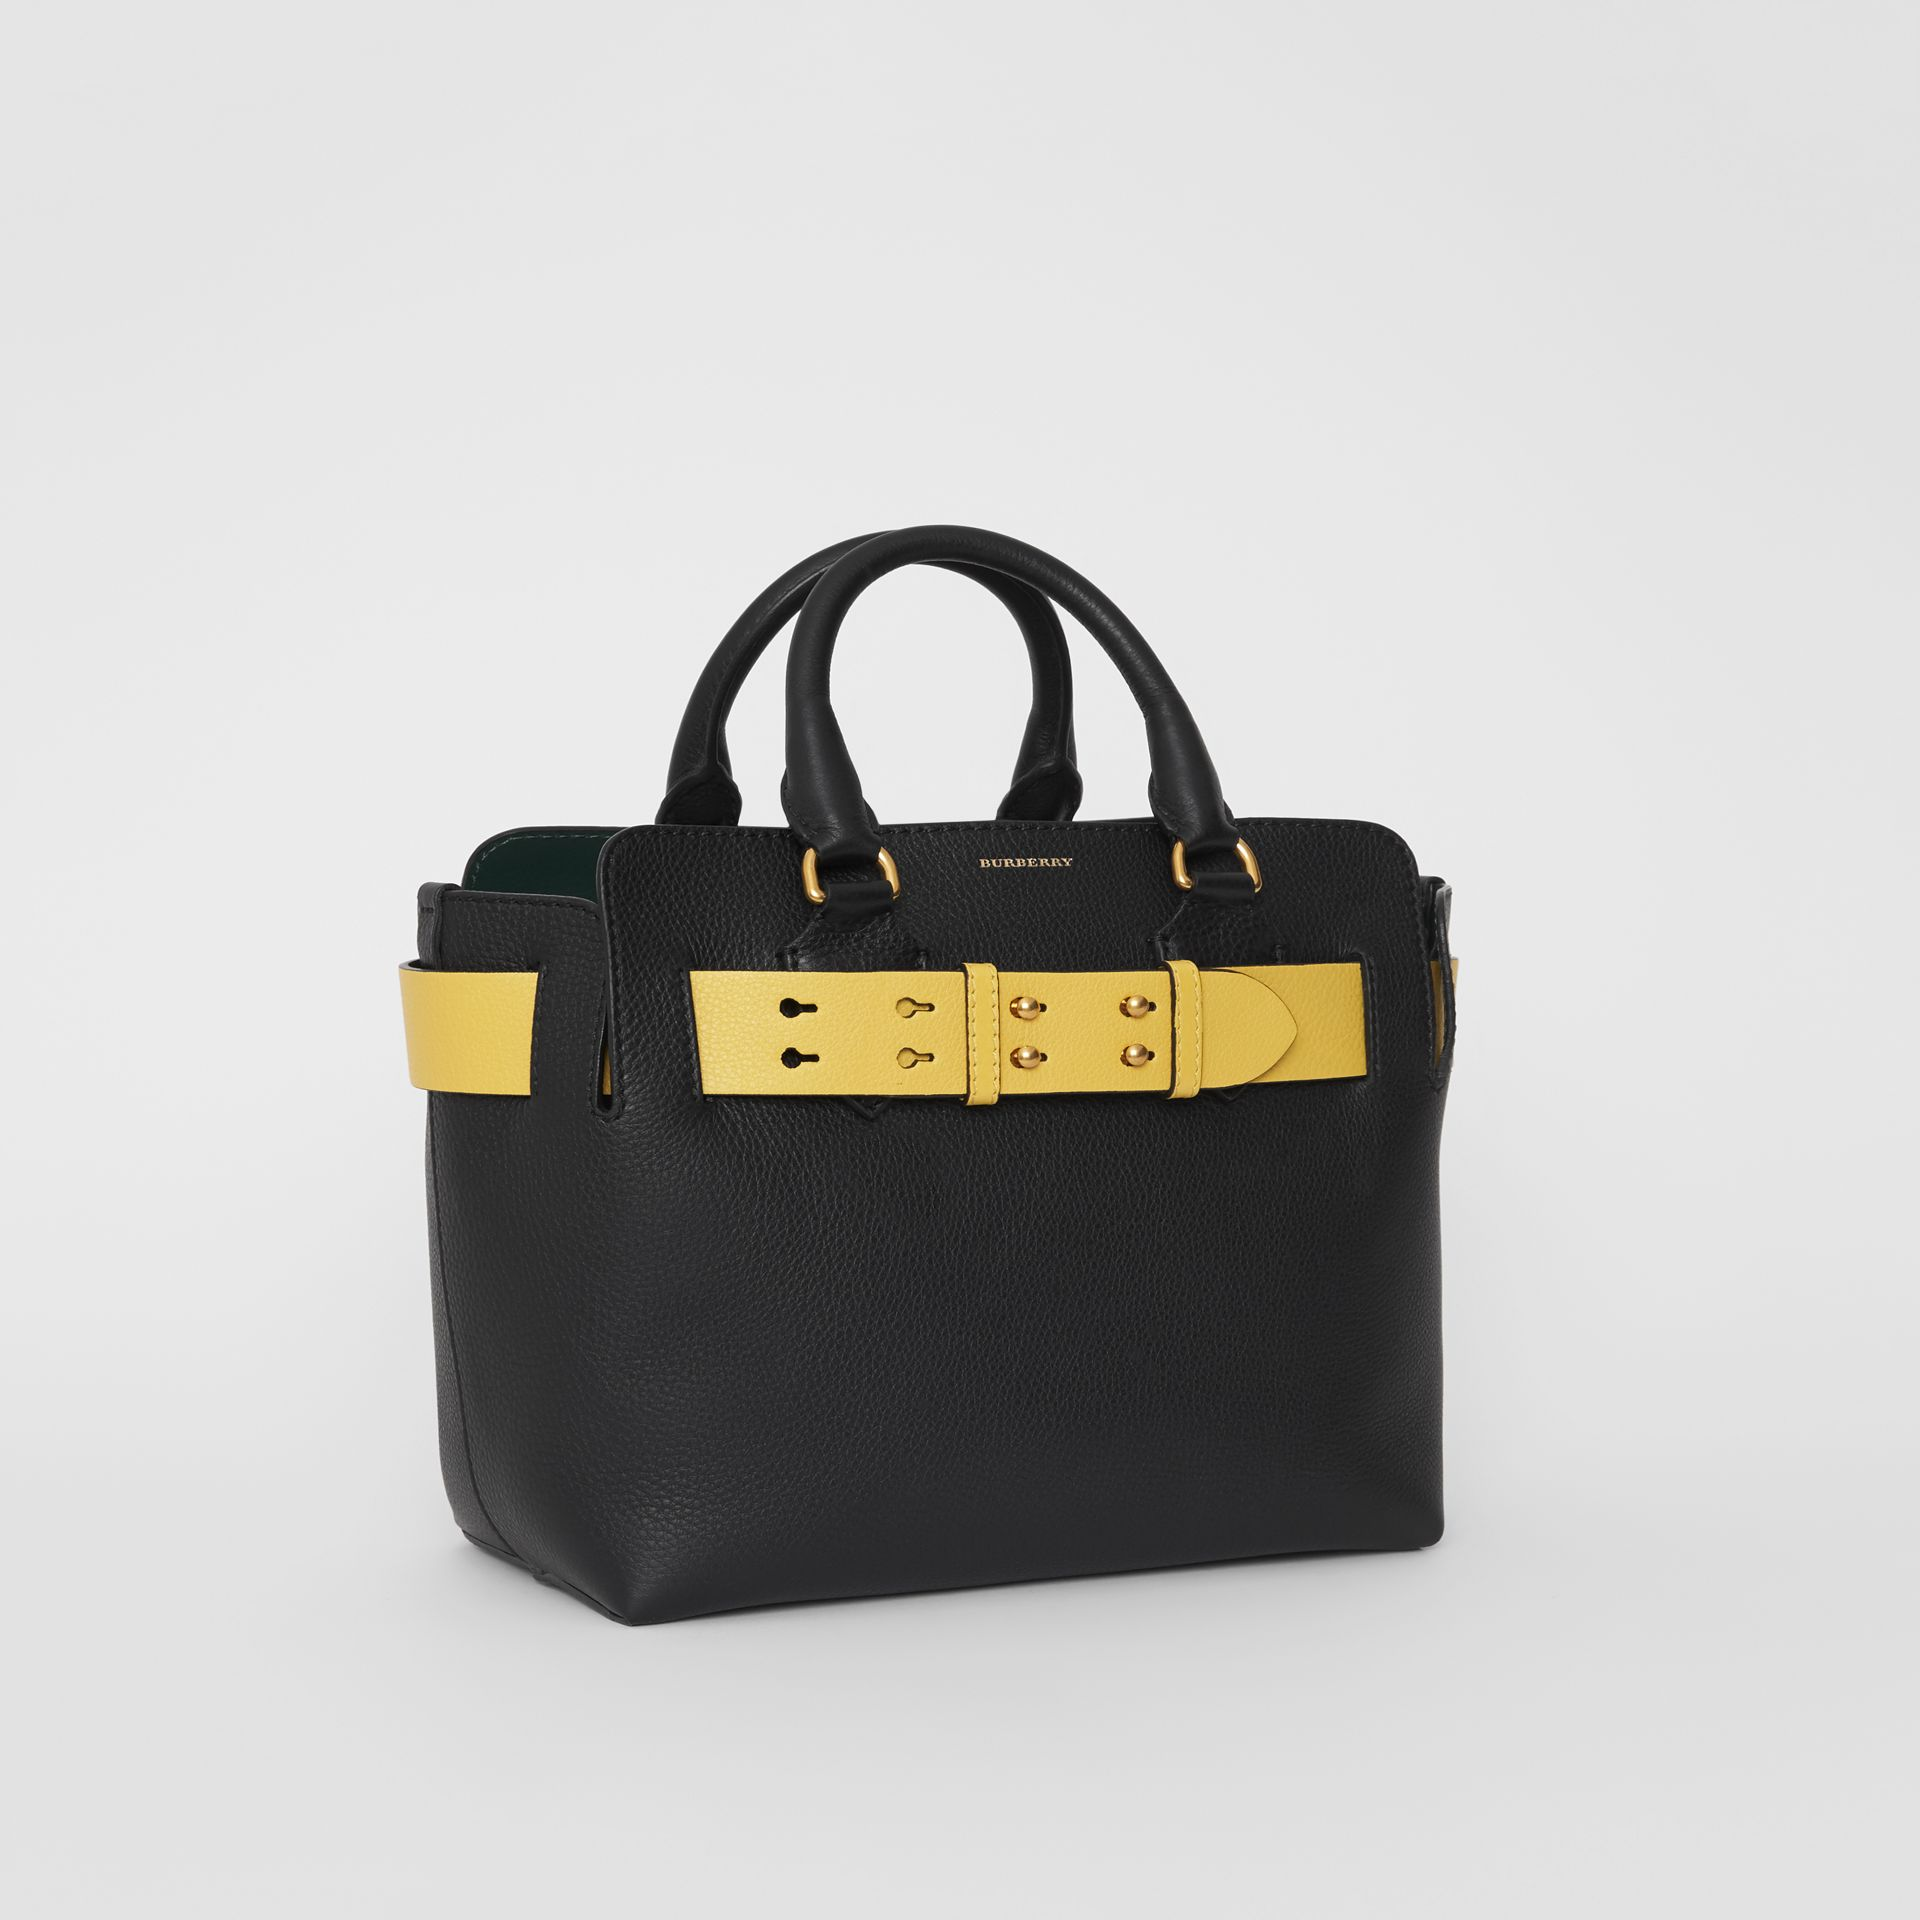 Petit sac The Belt en cuir (Noir/jaune) - Femme | Burberry - photo de la galerie 6